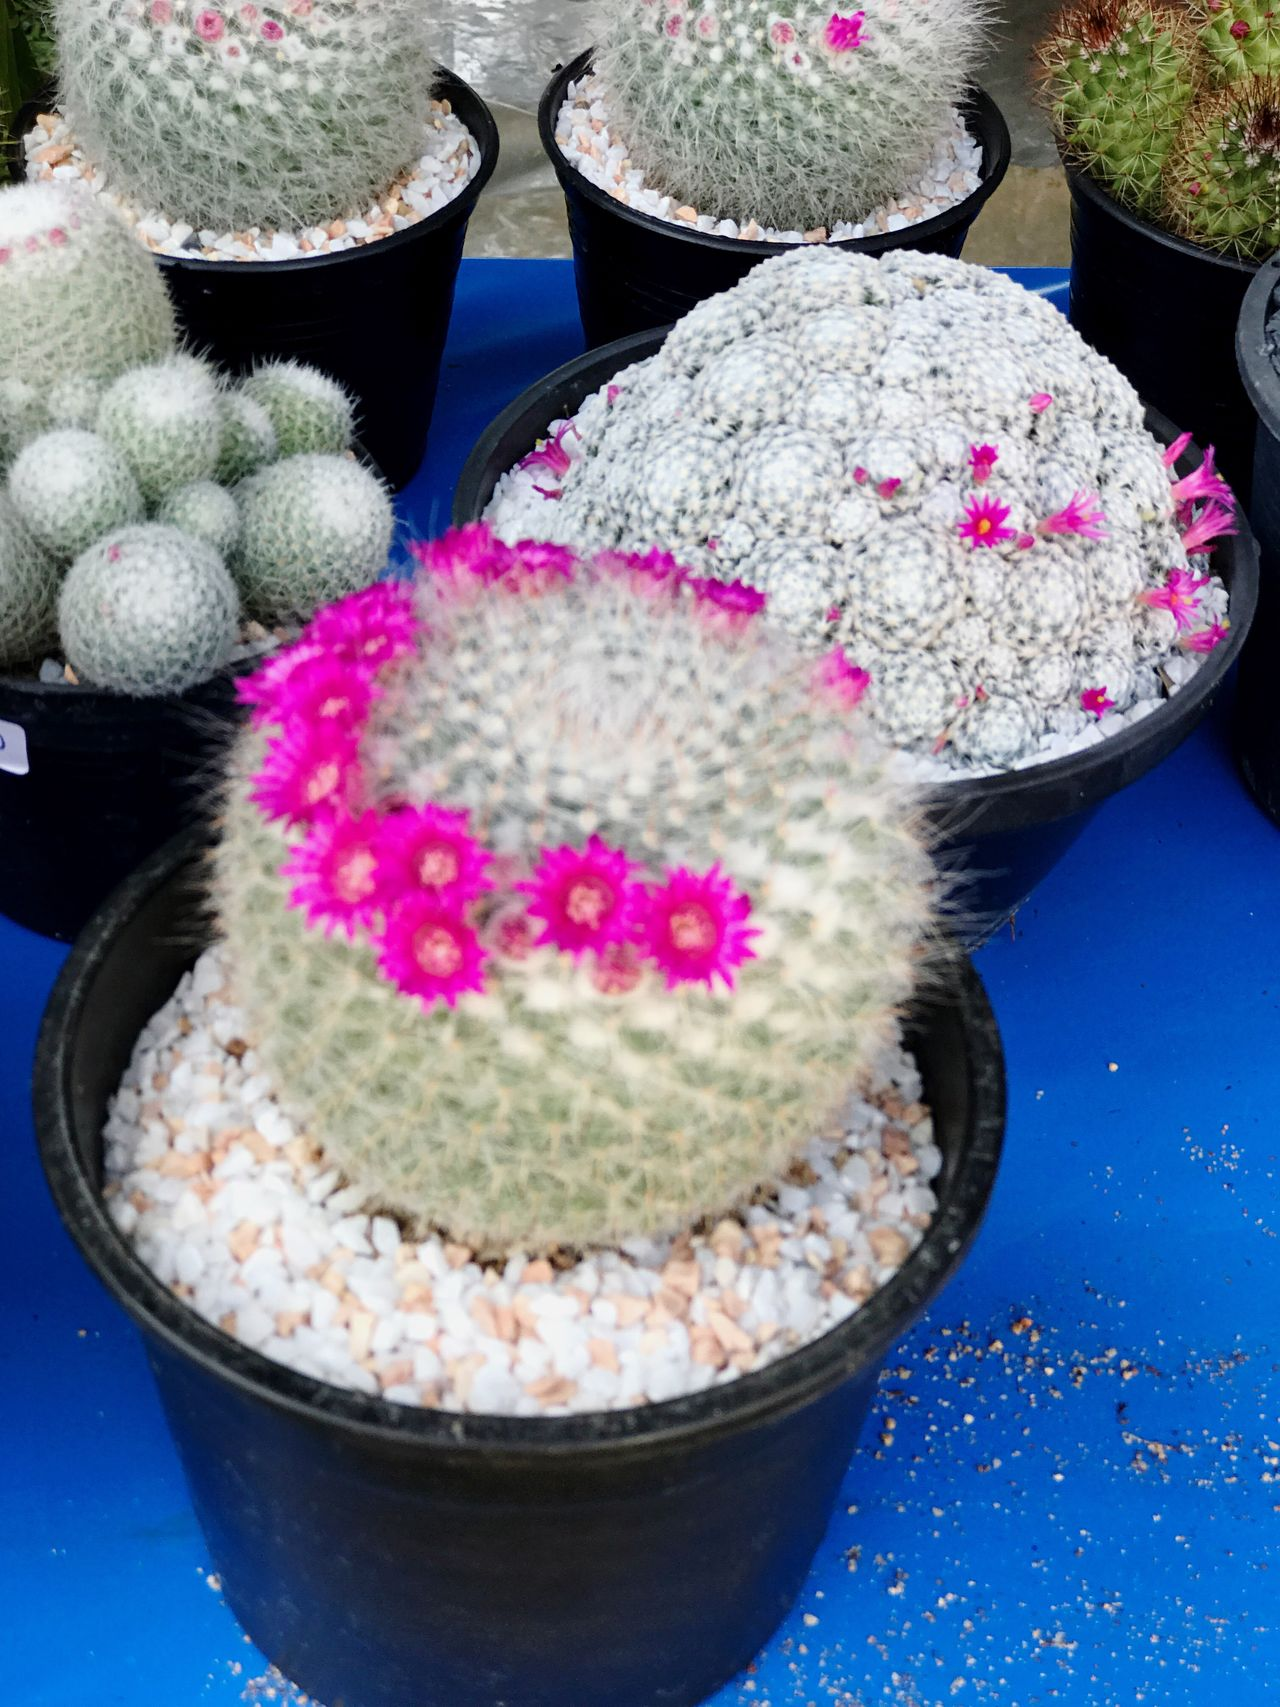 Cactus Garden Cactus Flower Cactus Cactus Collection Cactusmagazine Cactuslover Cactusplants Pink Color High Angle View No People Freshness Multi Colored Close-up Flower Indoors  Sweet Food Day Nature EyeEm Nature Lover Cactusflower Cactus Paradise Cacti Garden Beauty In Nature